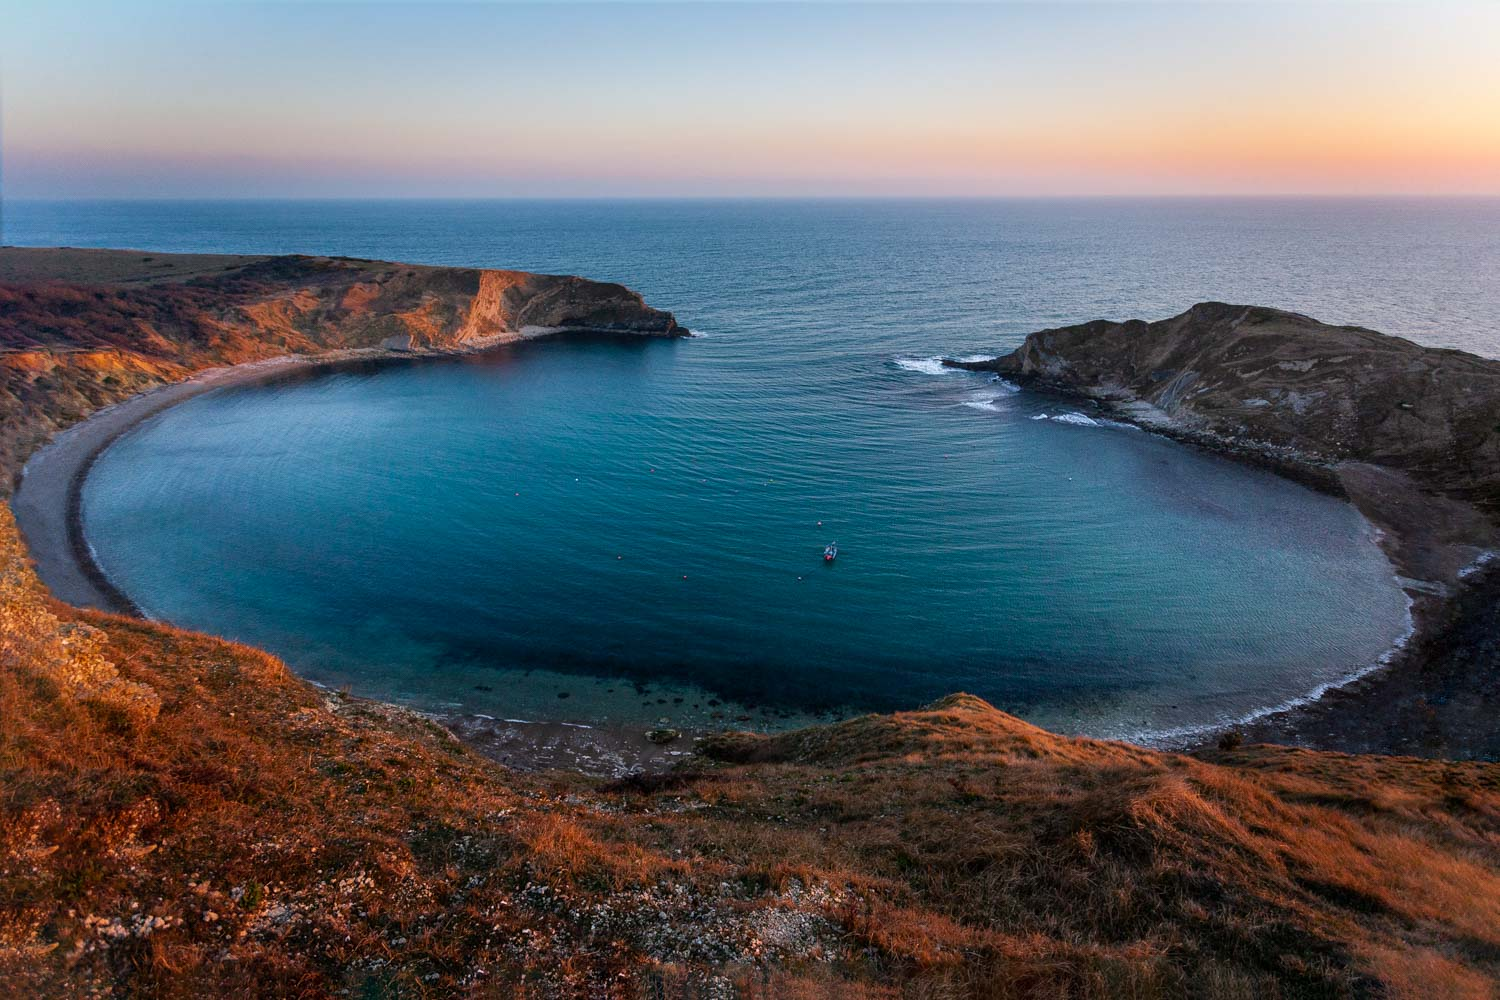 Lulworth Cove in Dorset by Rick McEvoy